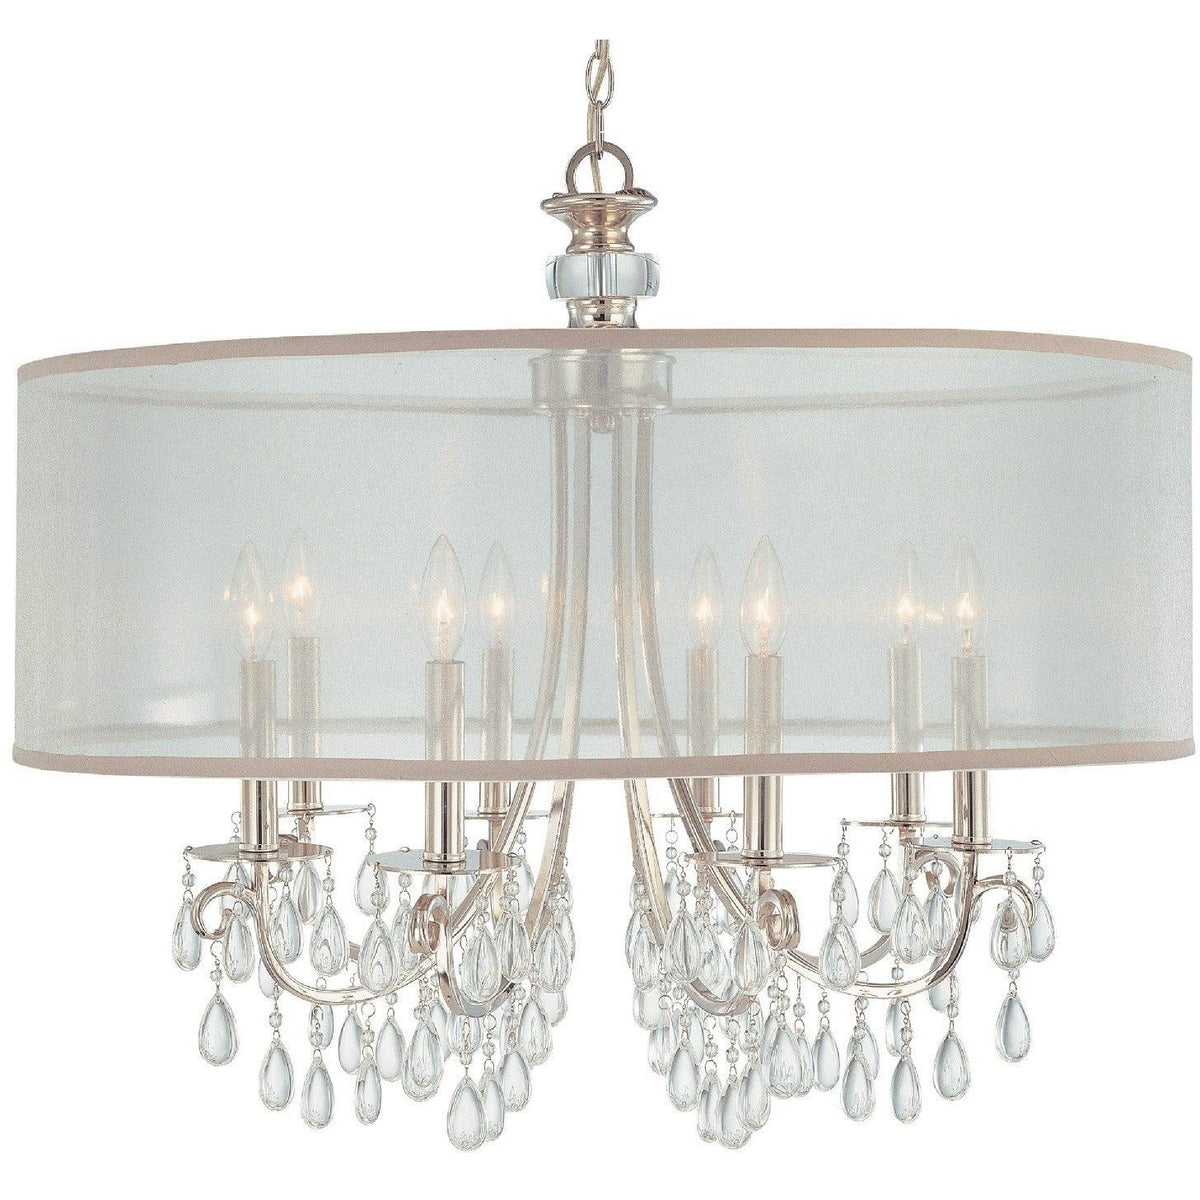 Crystorama - 5628-CH - Eight Light Chandelier - Hampton - Polished Chrome